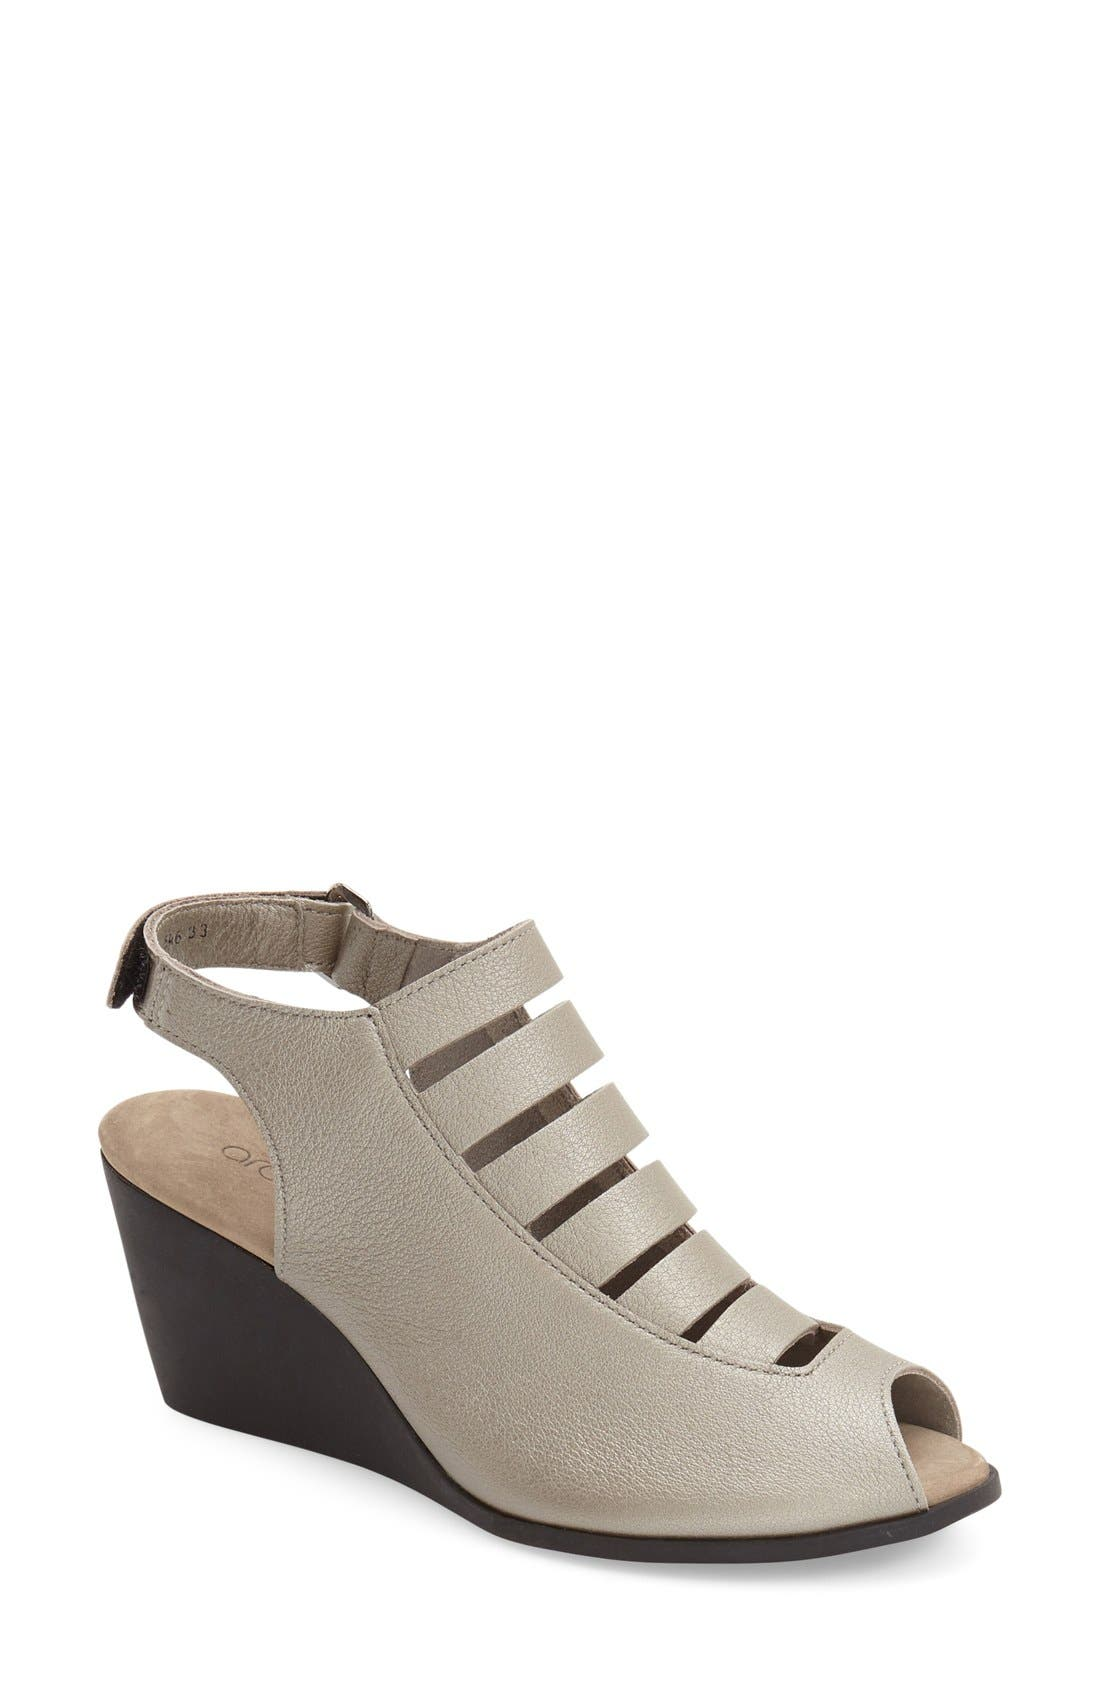 Arche Egzy Wedge Sandal (Women)